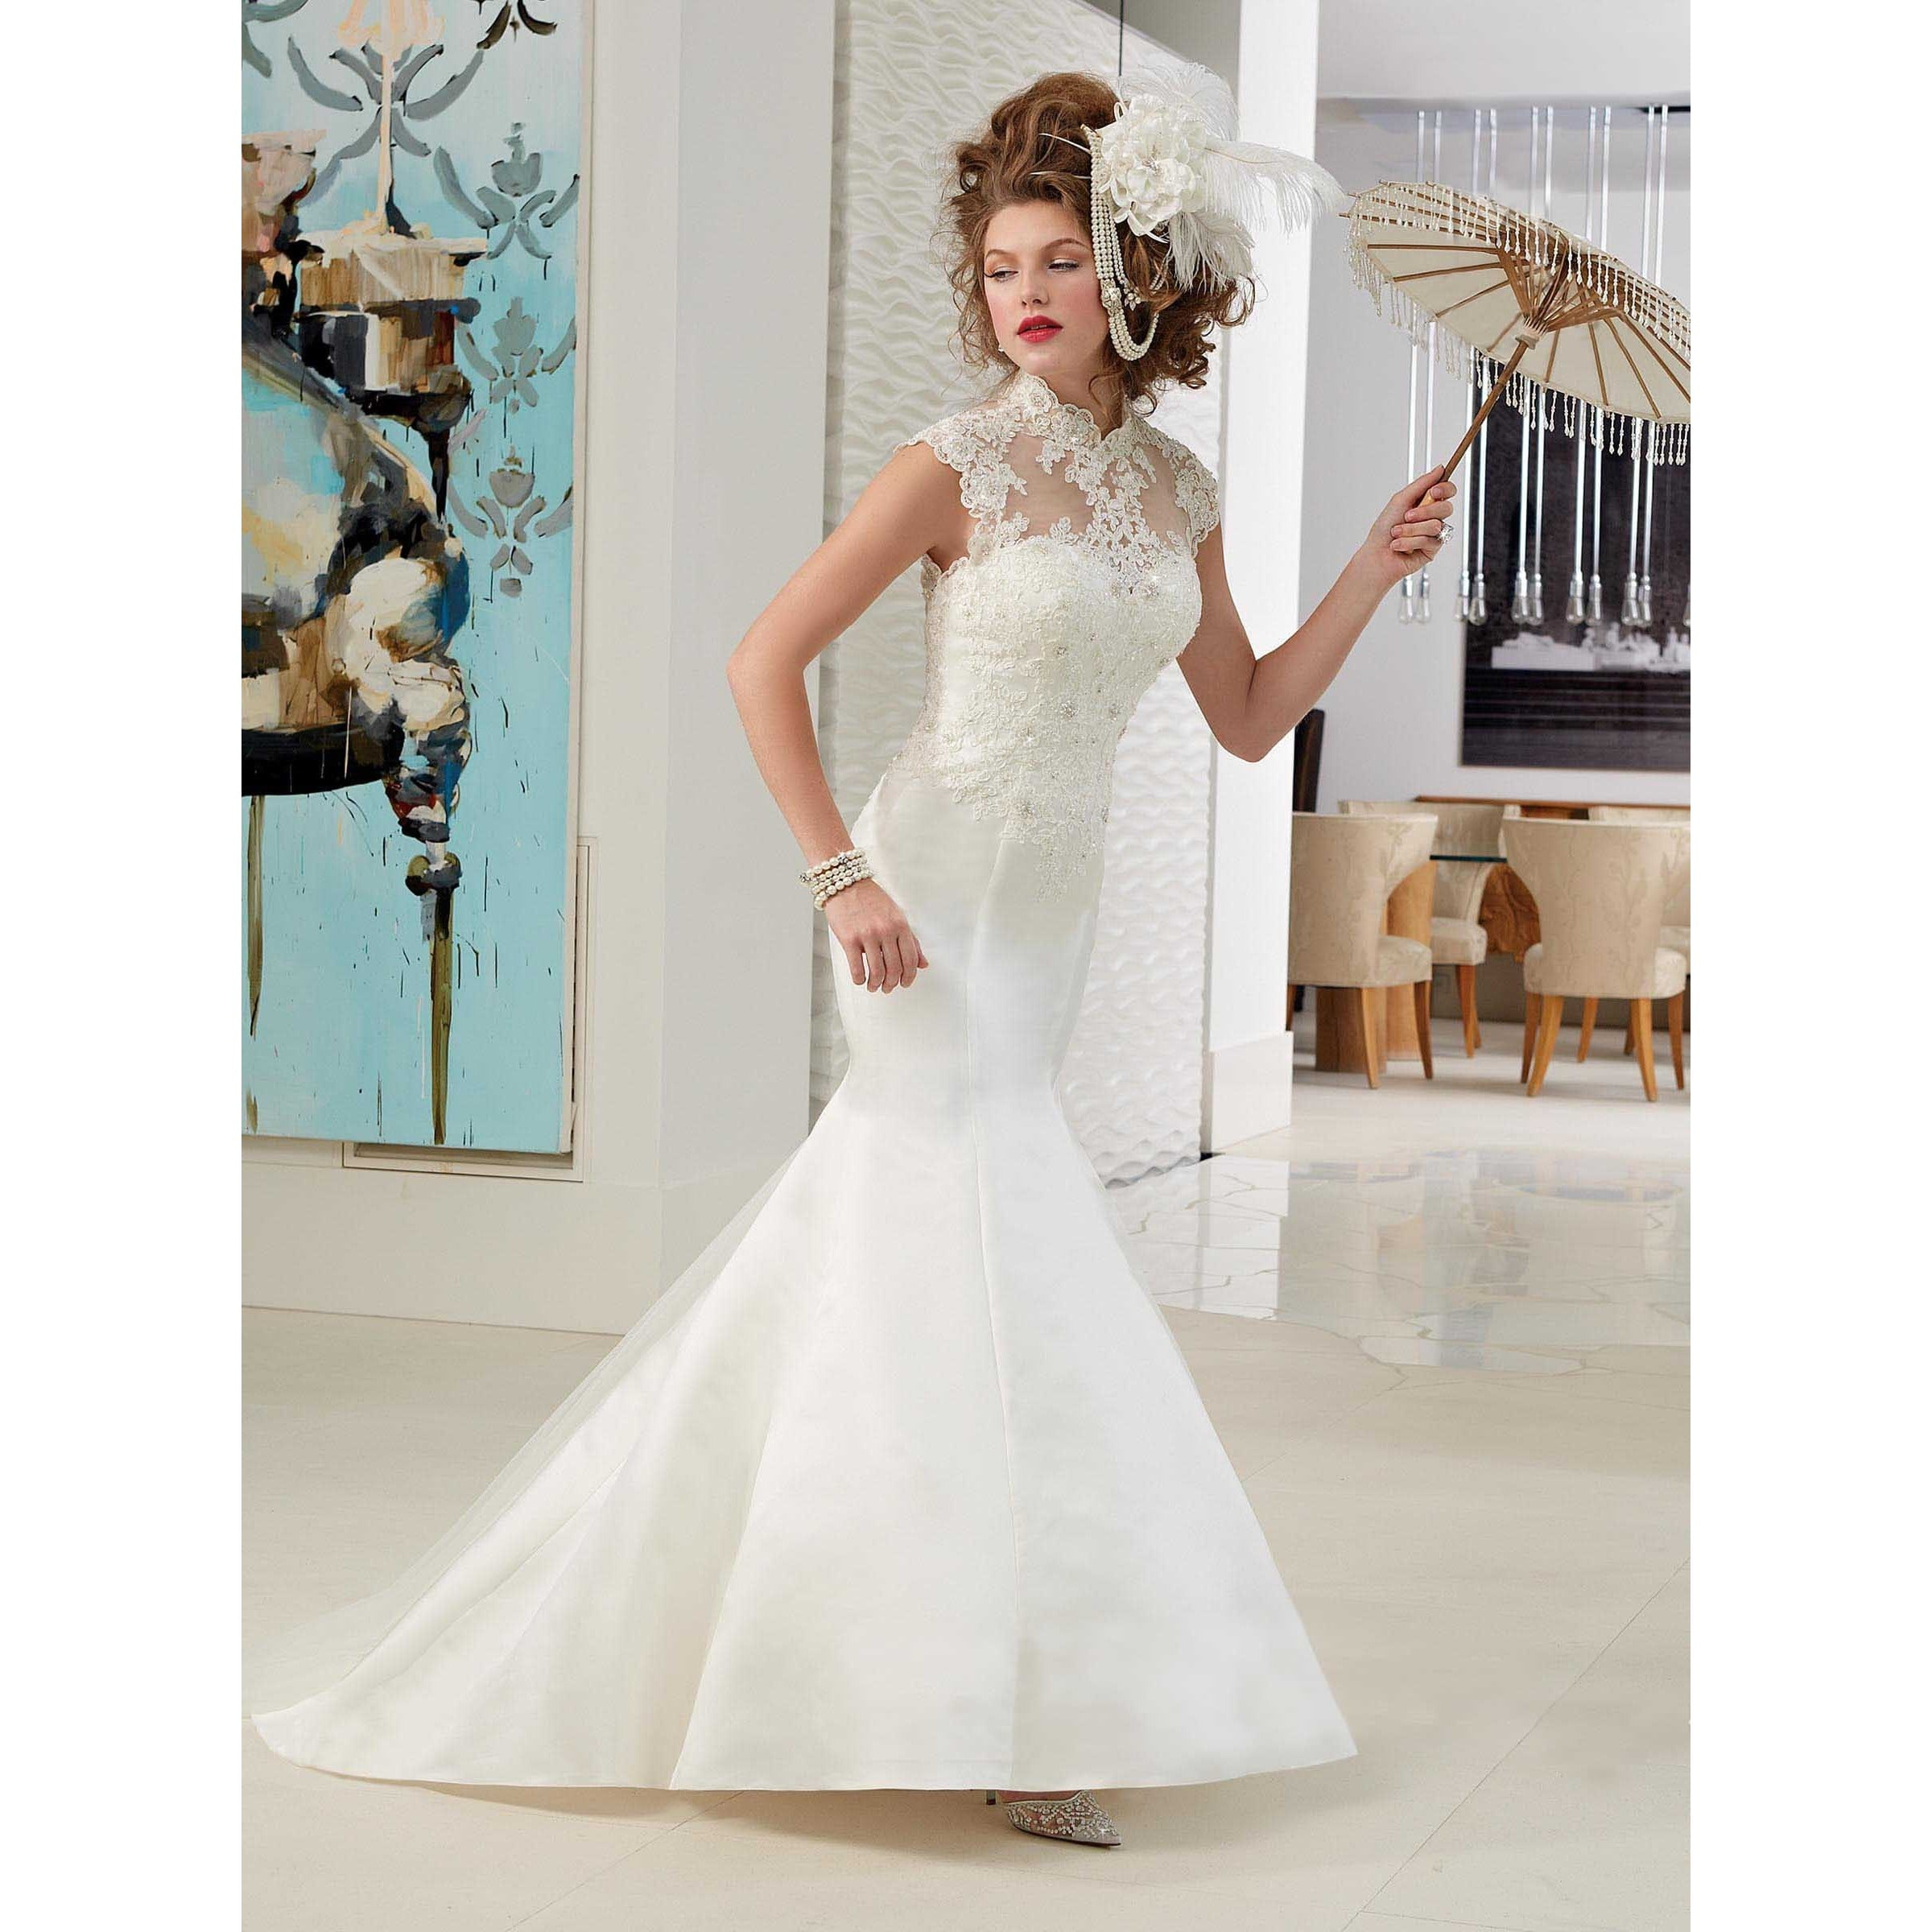 Mary\'s Women\'s Lace Trumpet Bridal Gown (Size 16) - Free Shipping ...